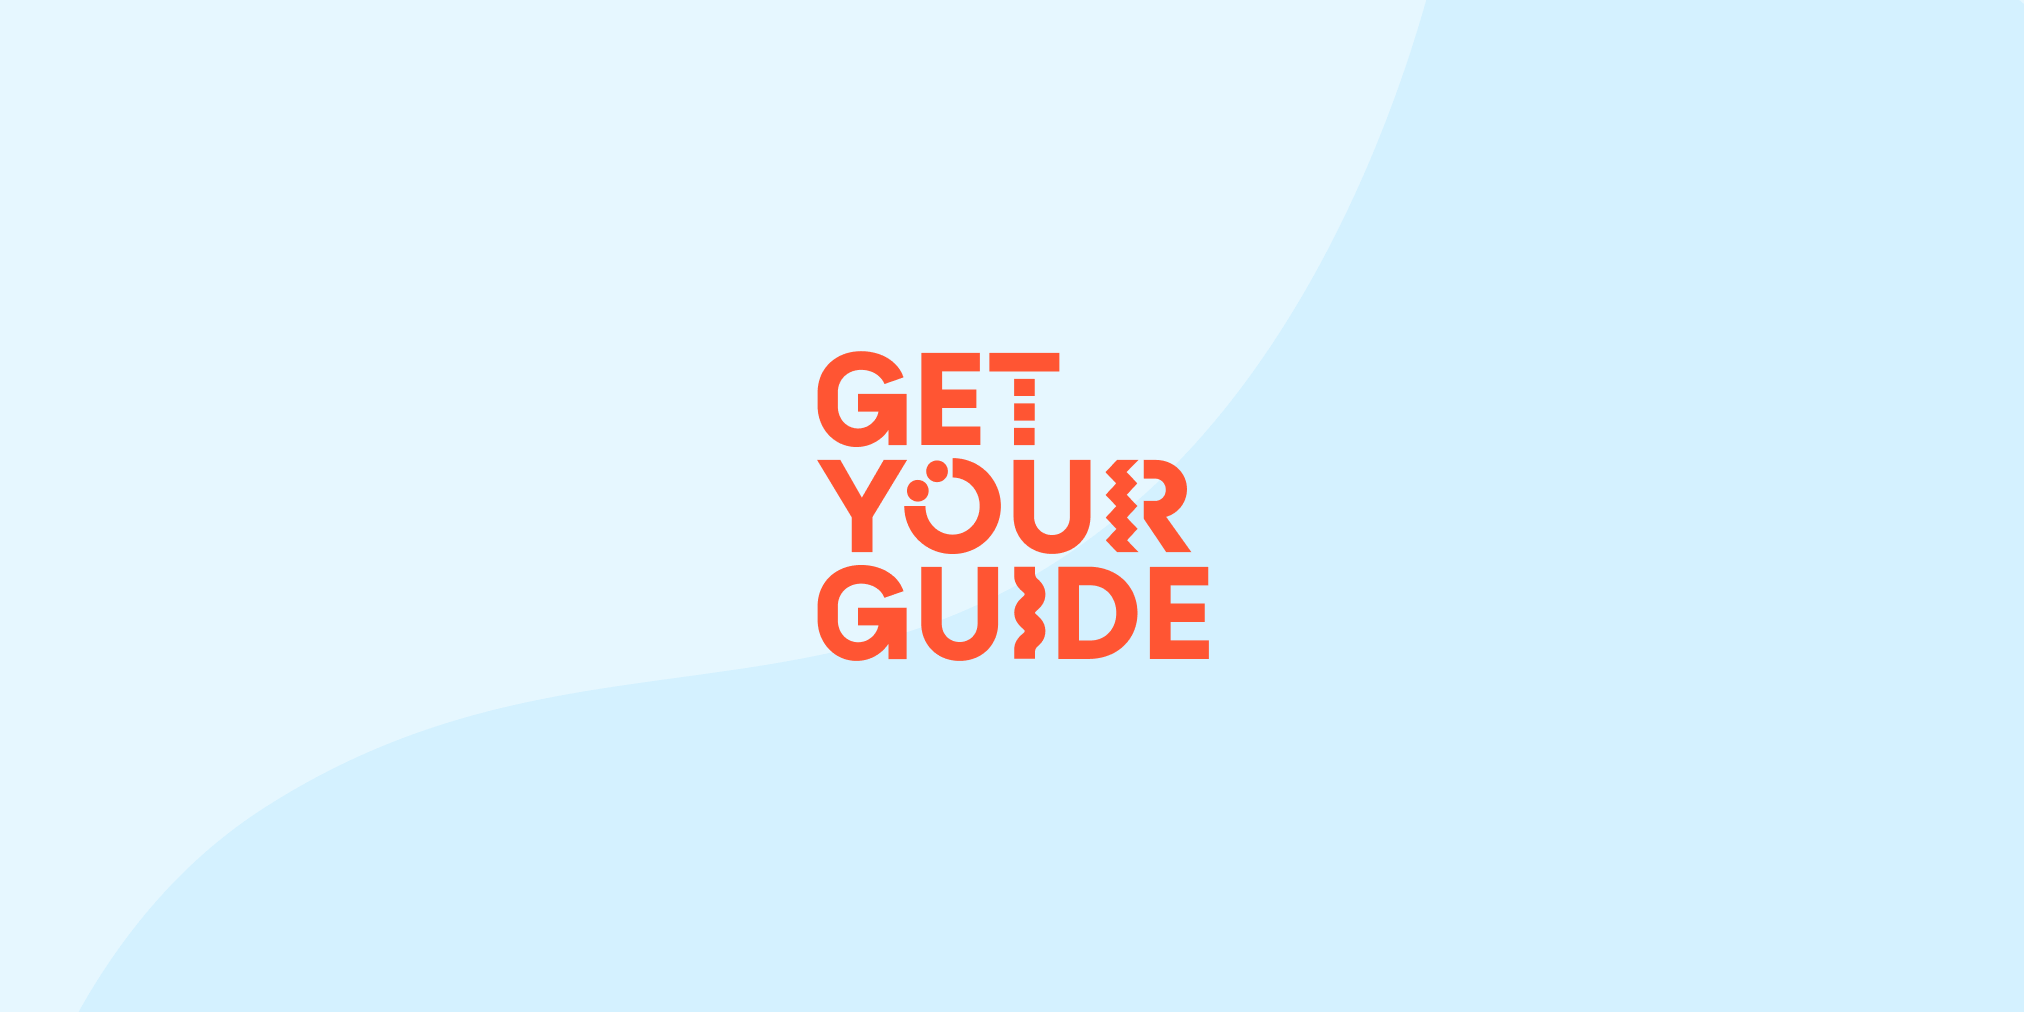 Video Tutorial: Boost your GetYourGuide conversions with this quick tip